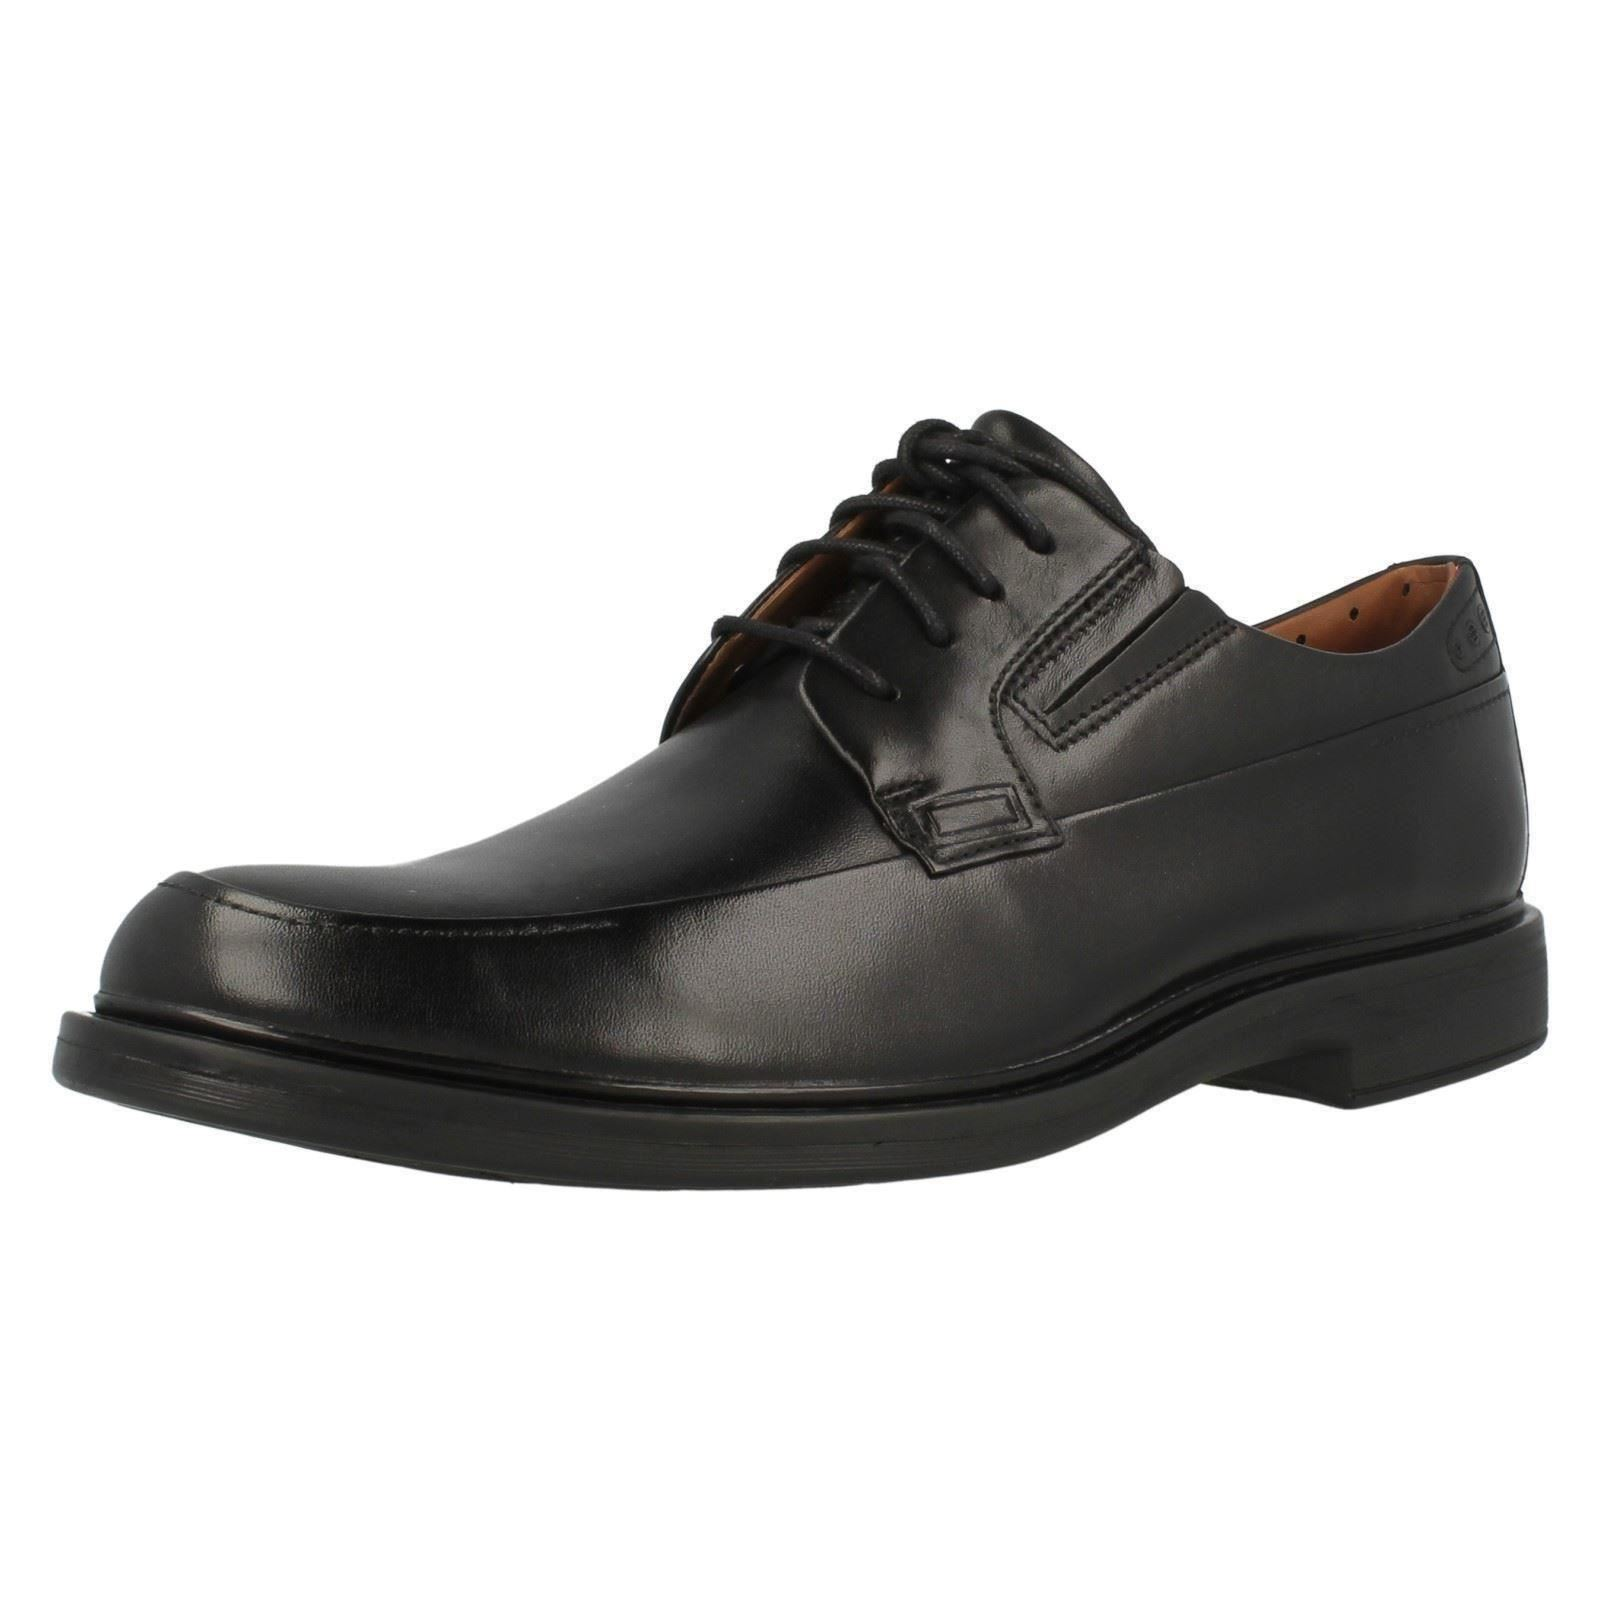 Mens Clarks Active Air Formal Lace Up Shoes Drexlar Time ...